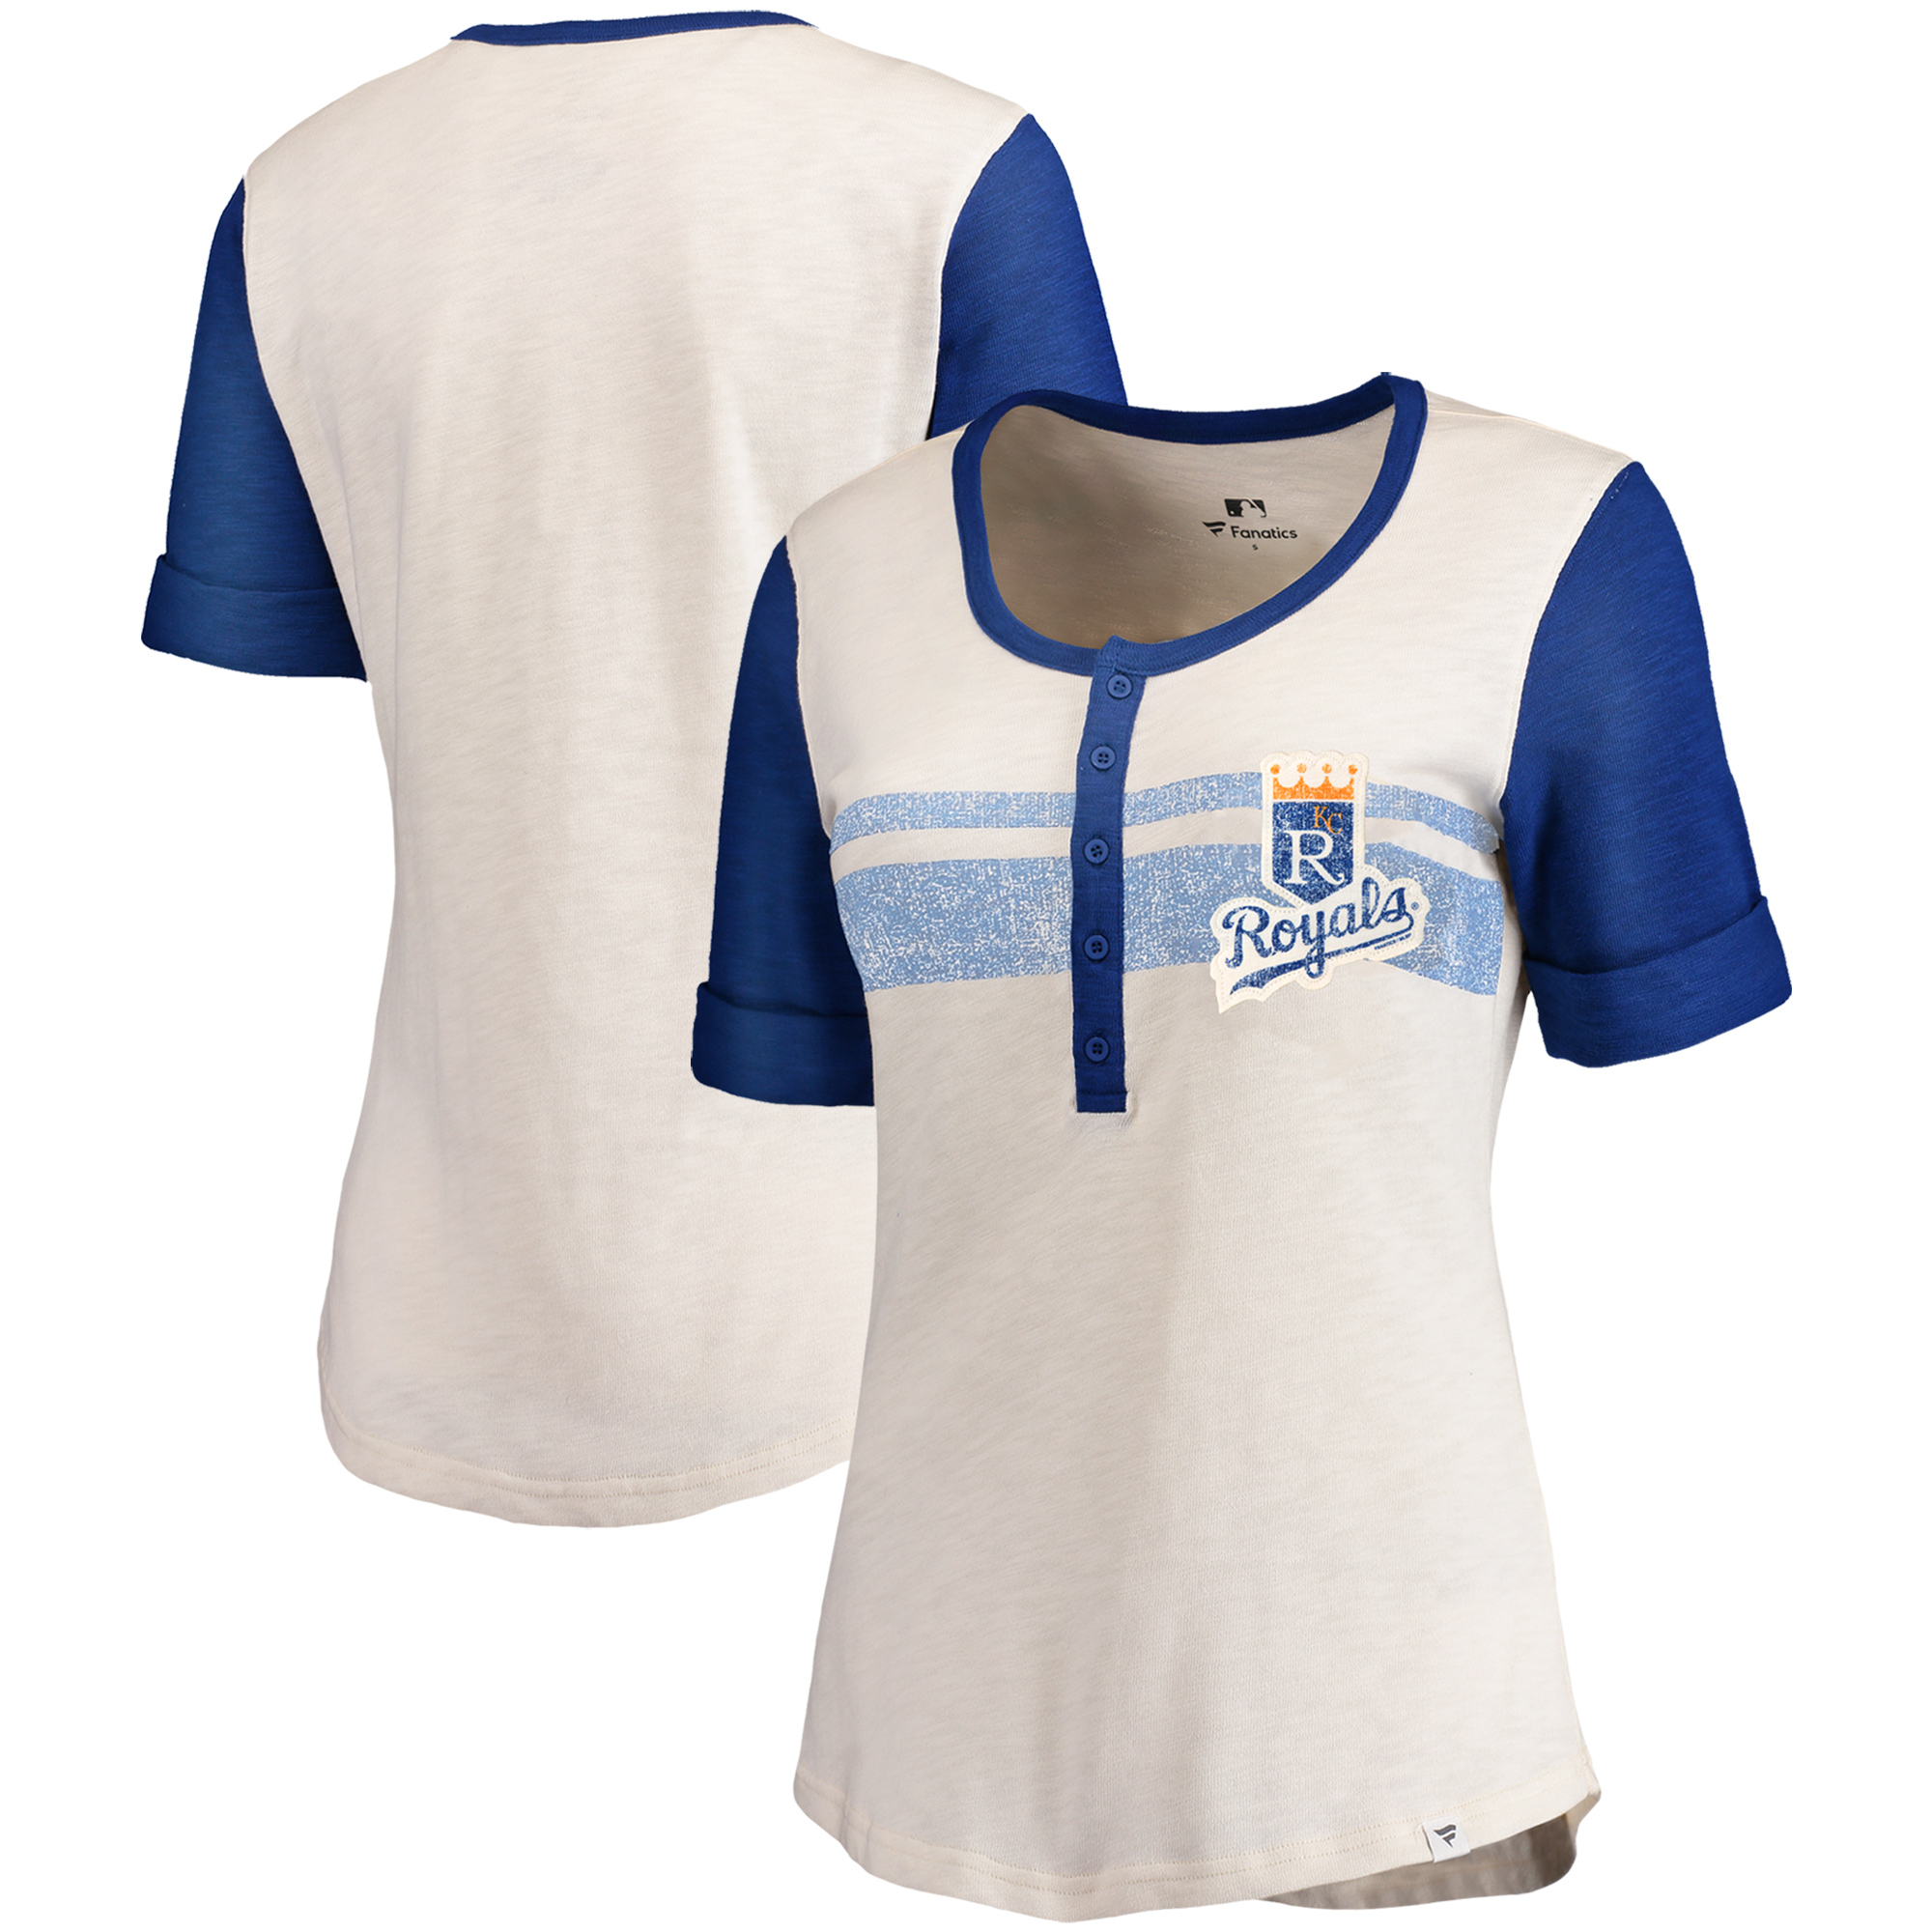 Kansas City Royals Fanatics Branded Women's True Classics Henley T-Shirt - Cream/Royal